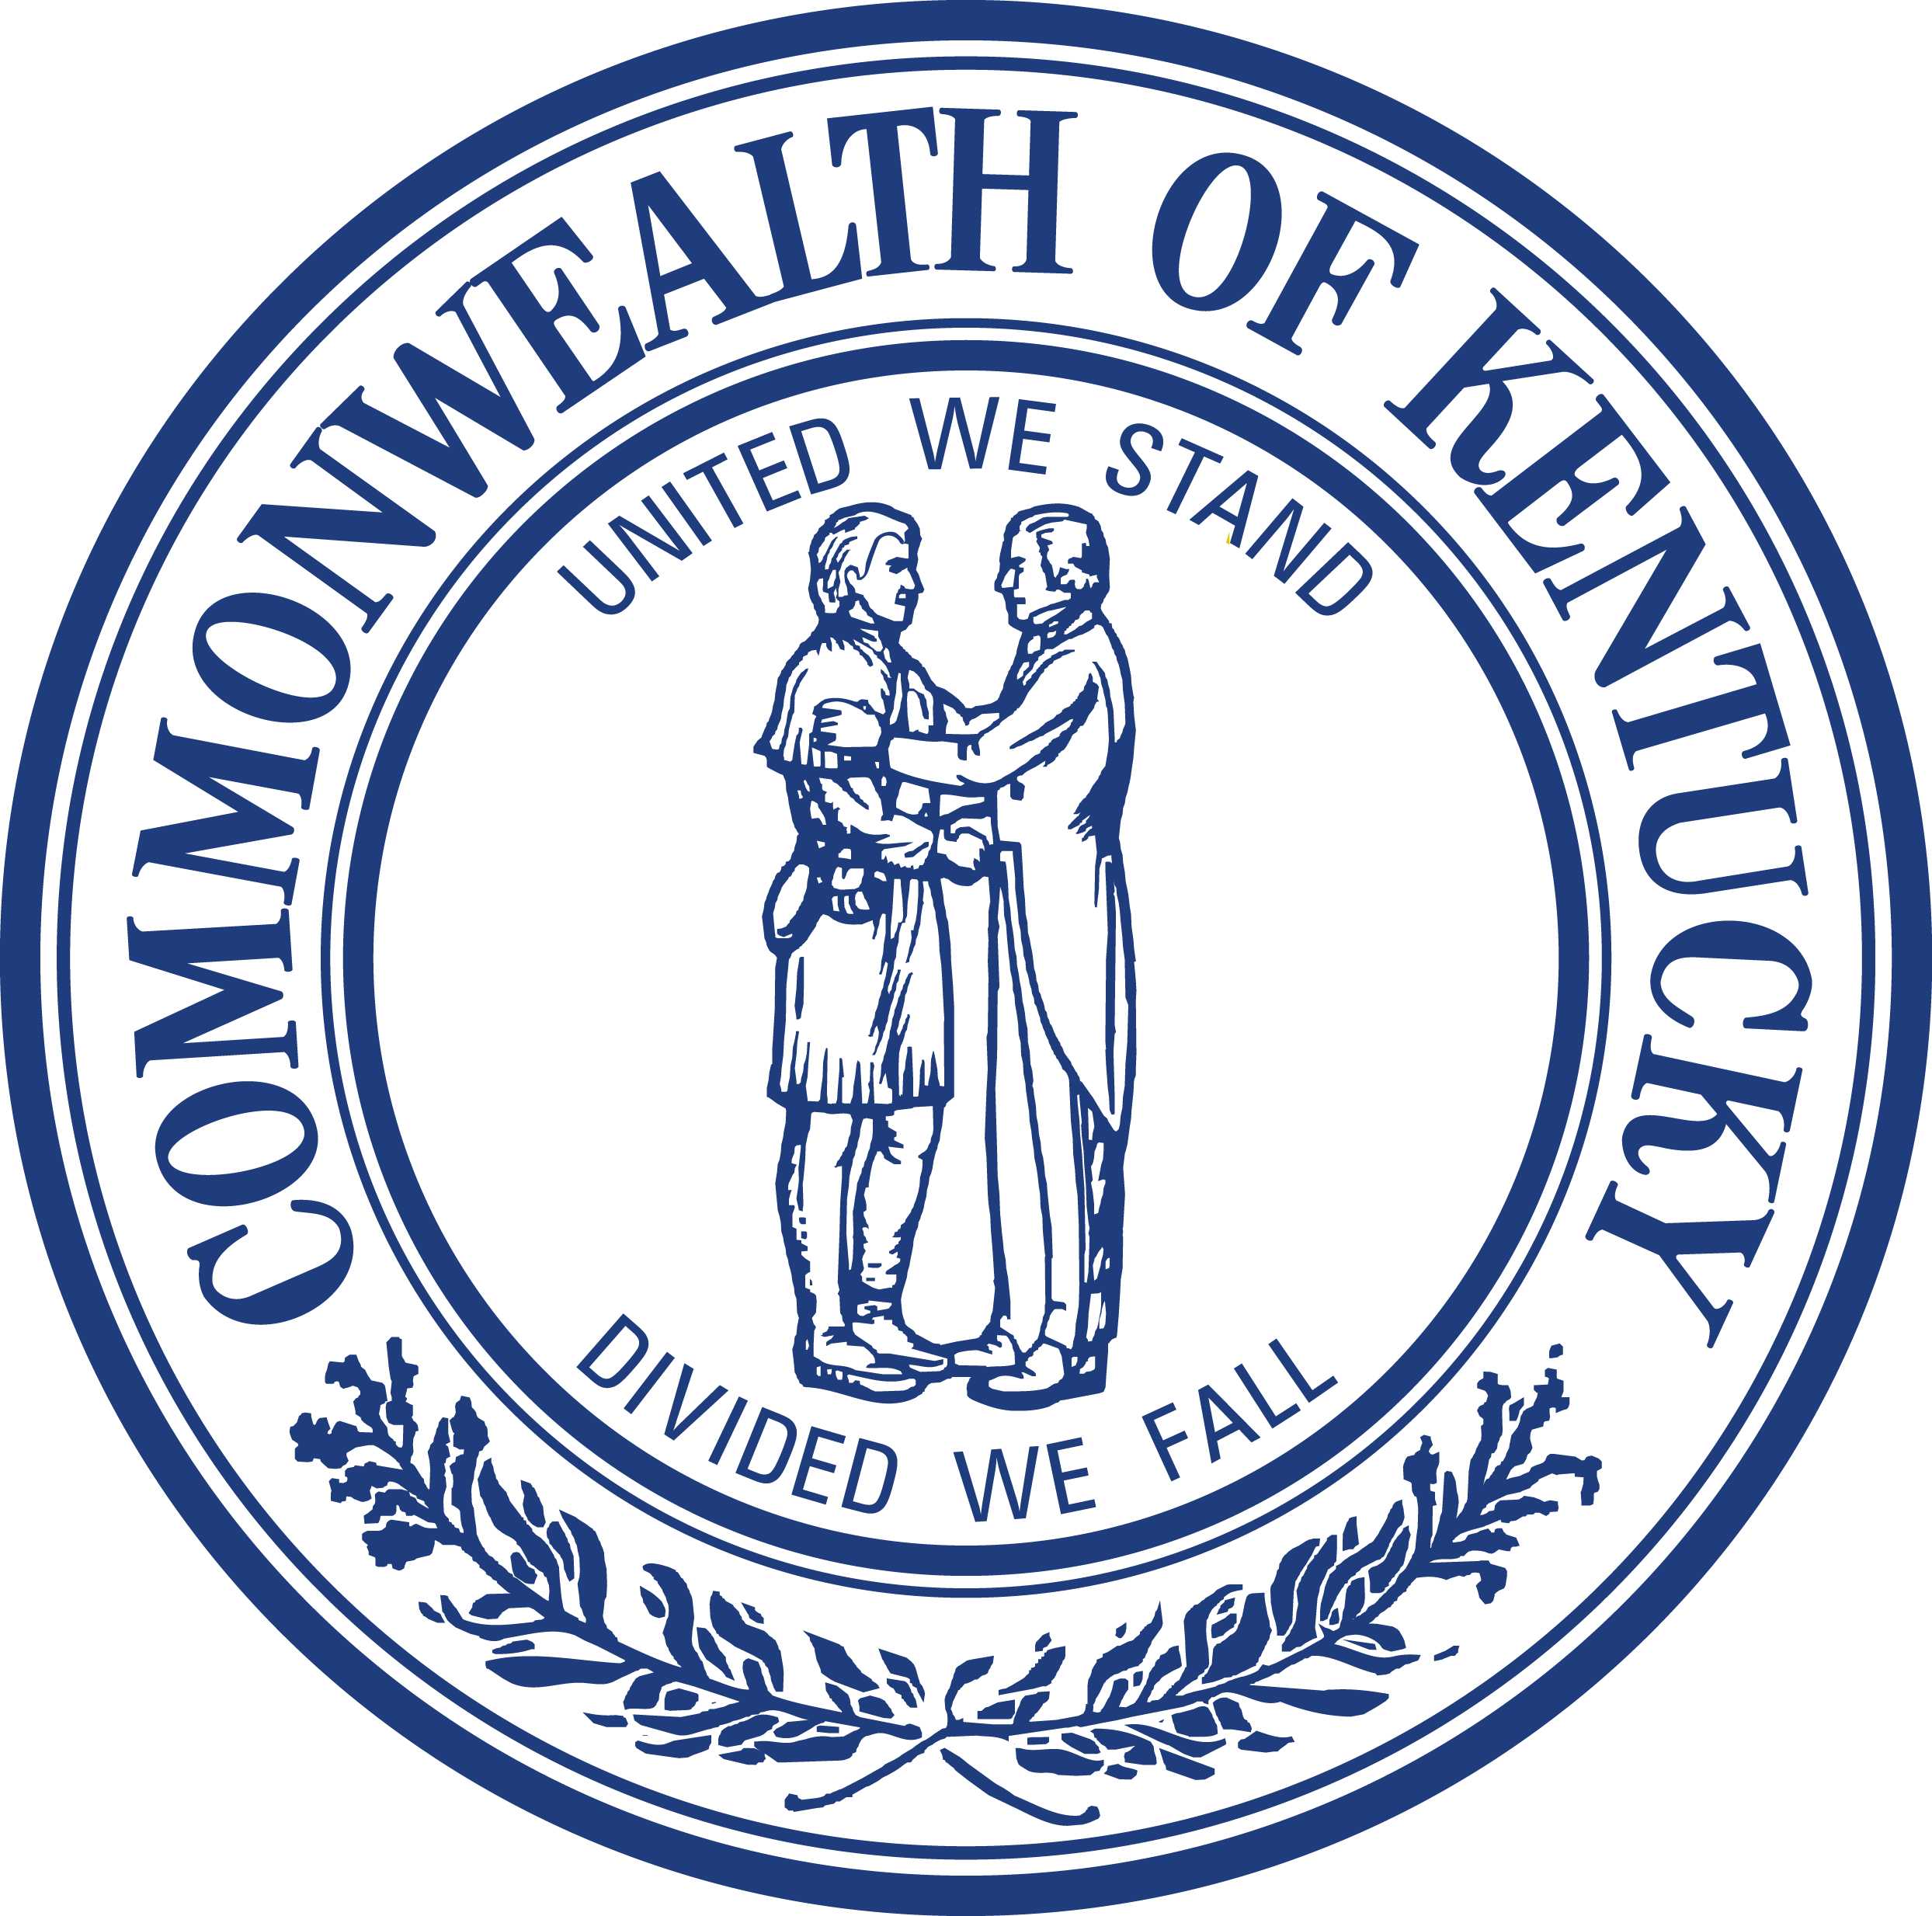 The Commonwealth of Kentucky - Official Seal or Logo